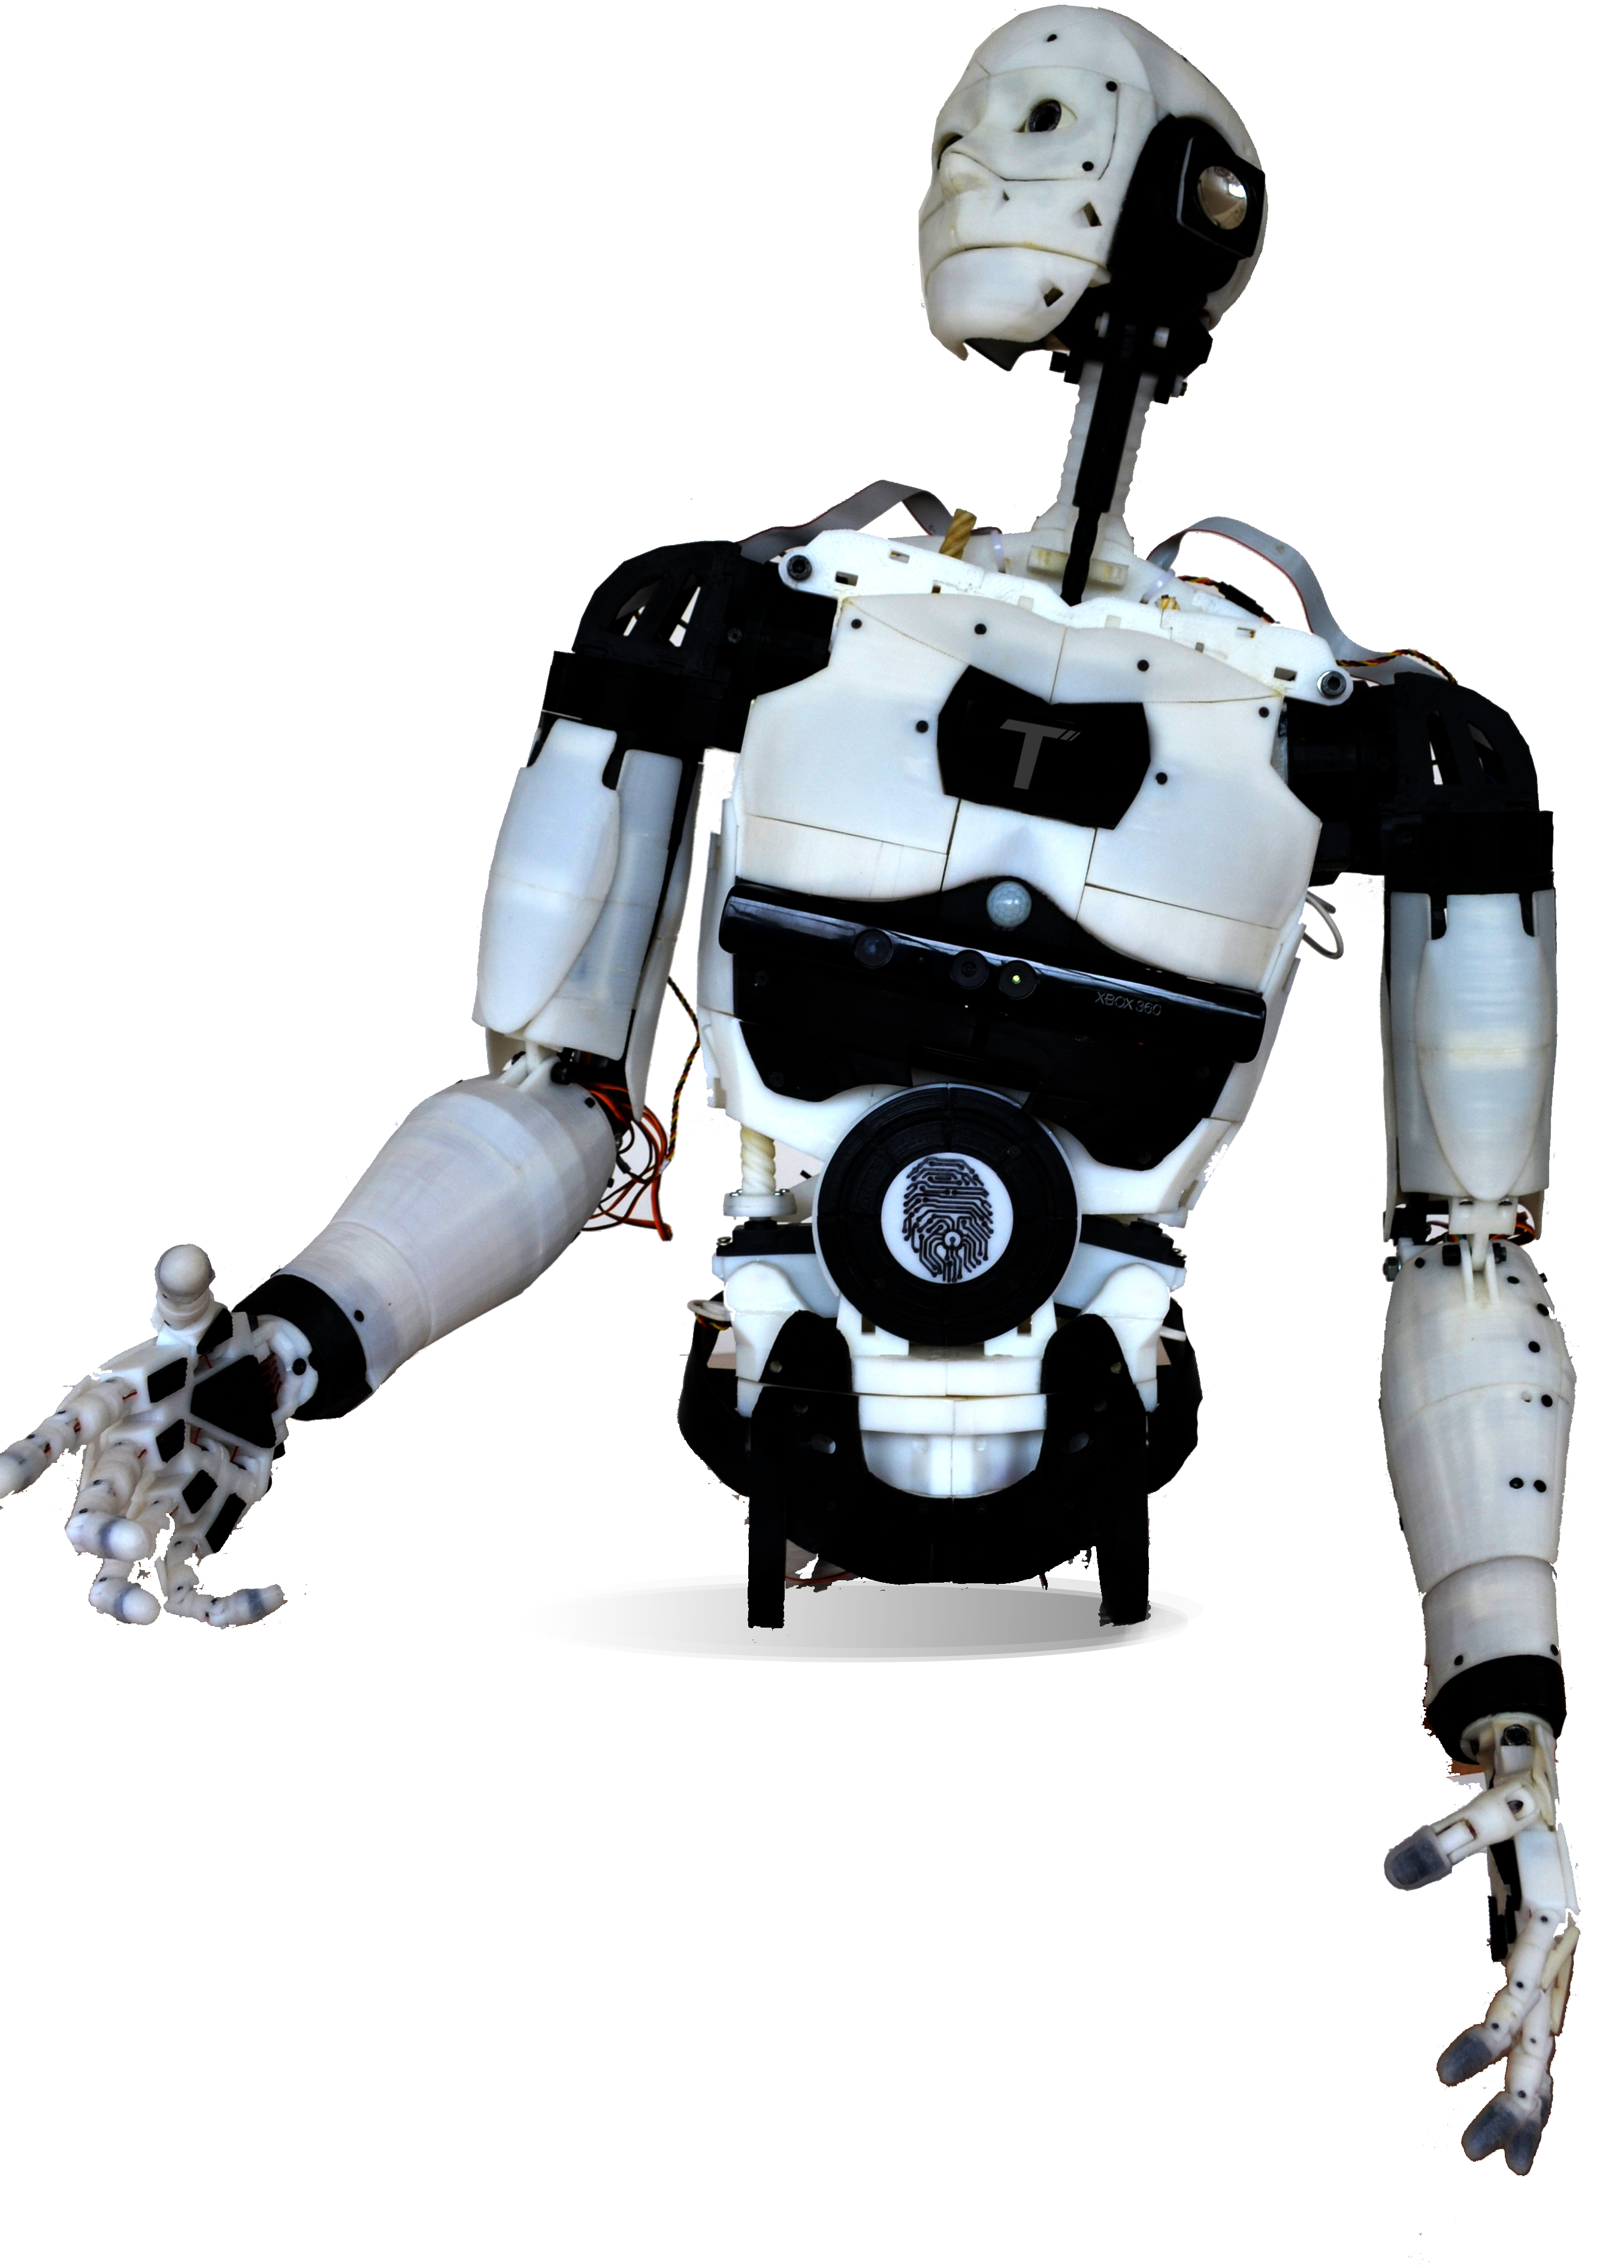 Robot PNG images free download.